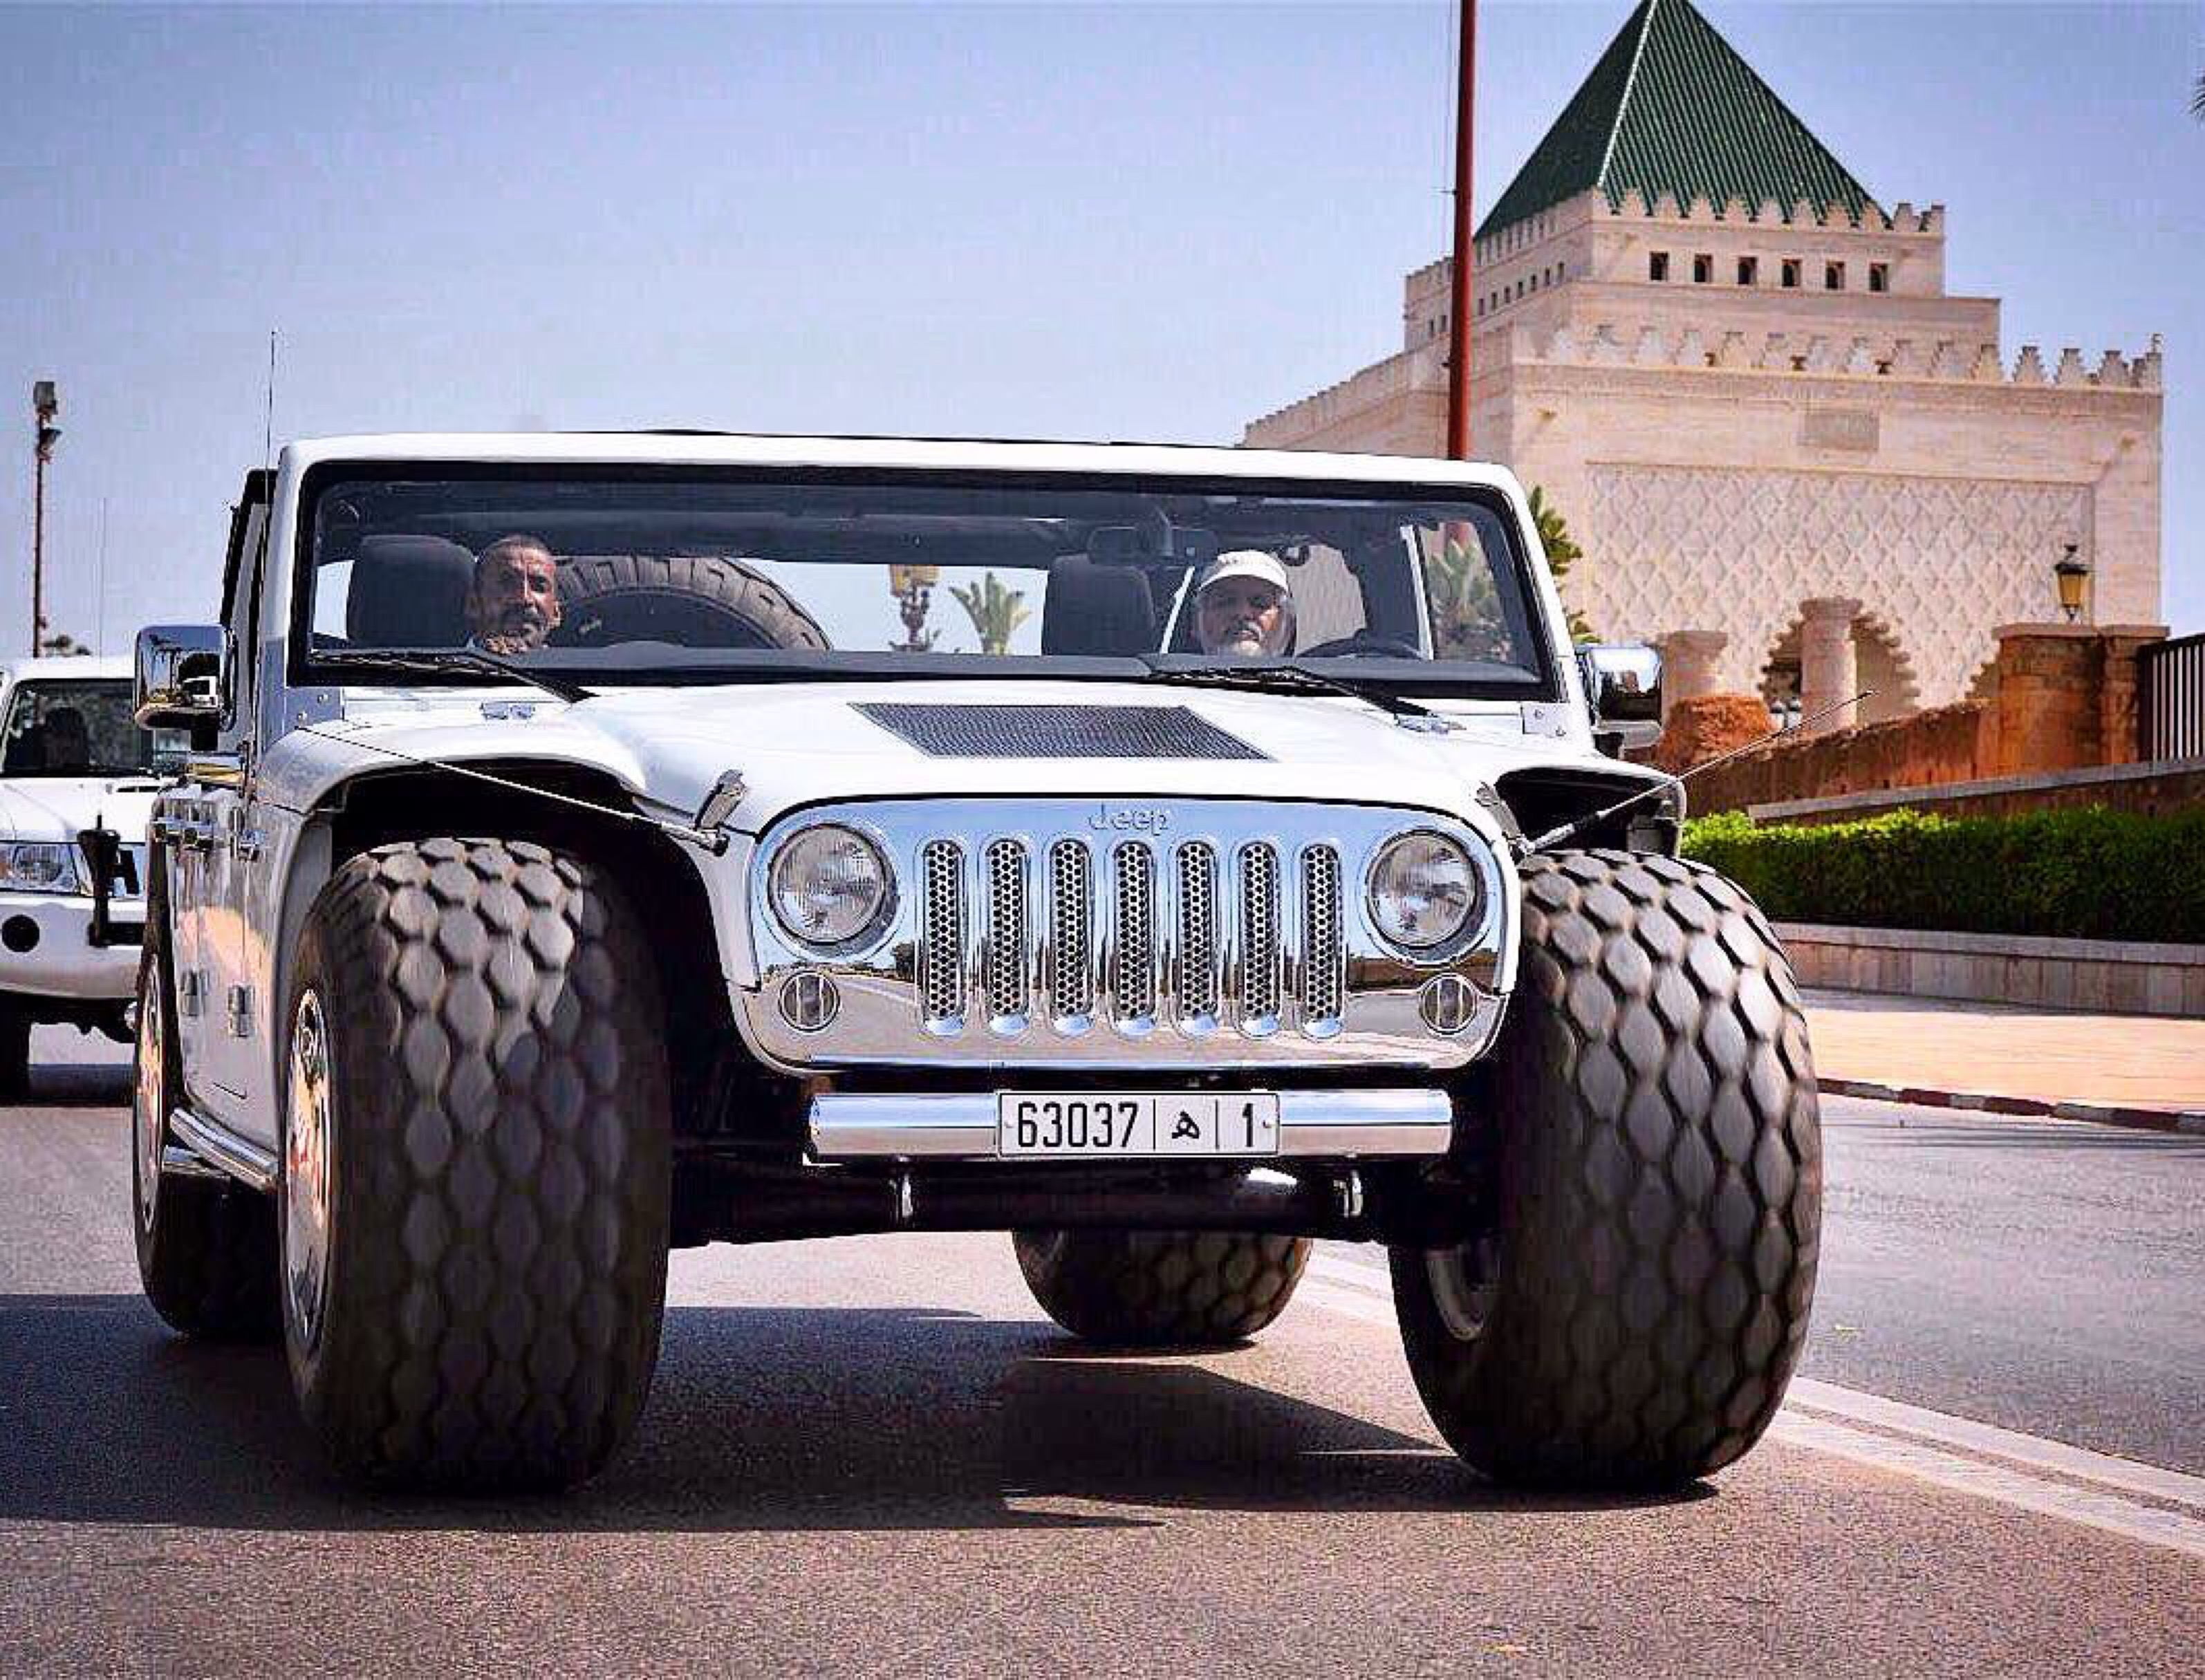 The Hummer HX Electric Car Is the Revival of the Hummer Brand